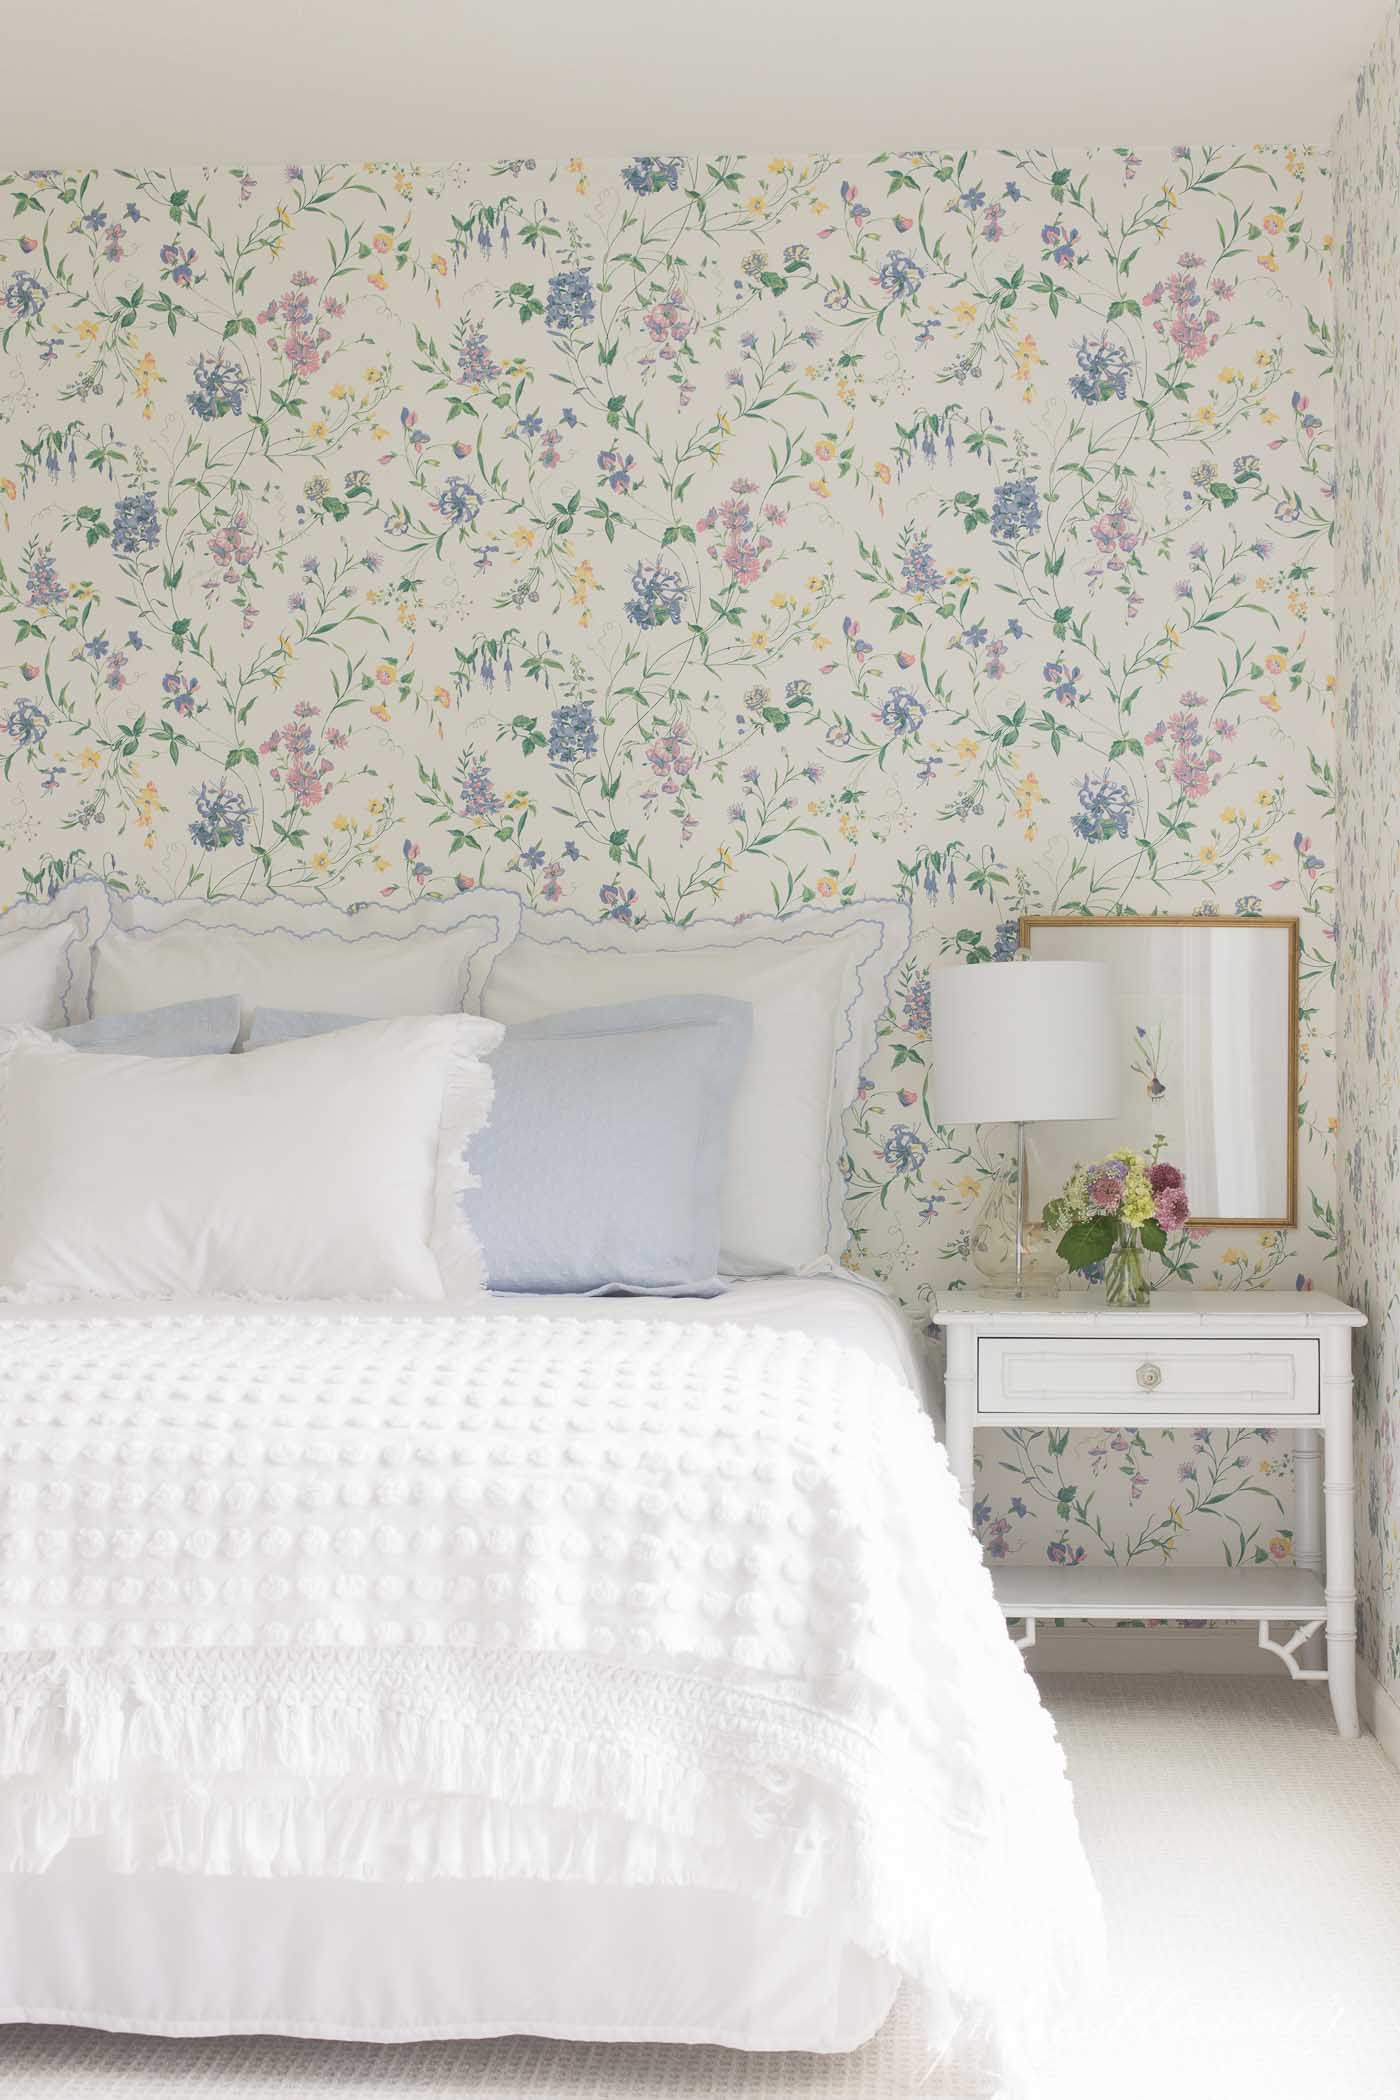 A floral wallpapered guest bedroom with blue and white bedding.